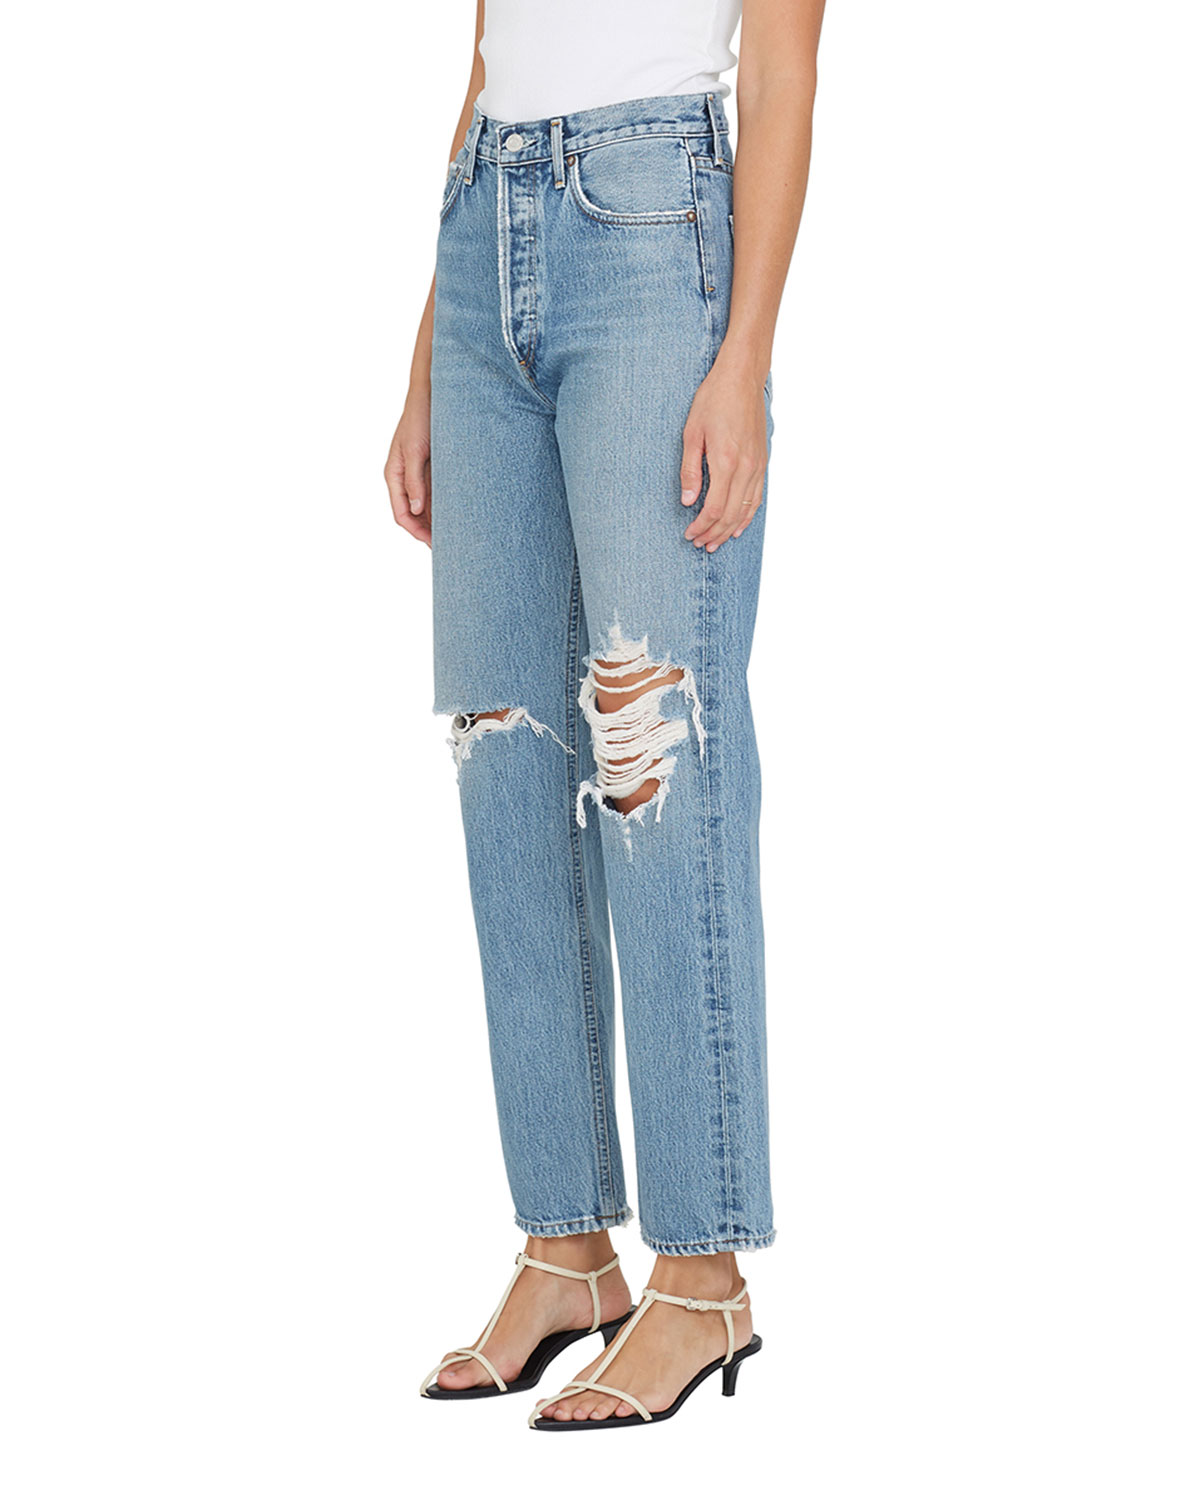 90s Pinched-Waist Vintage Straight Jeans